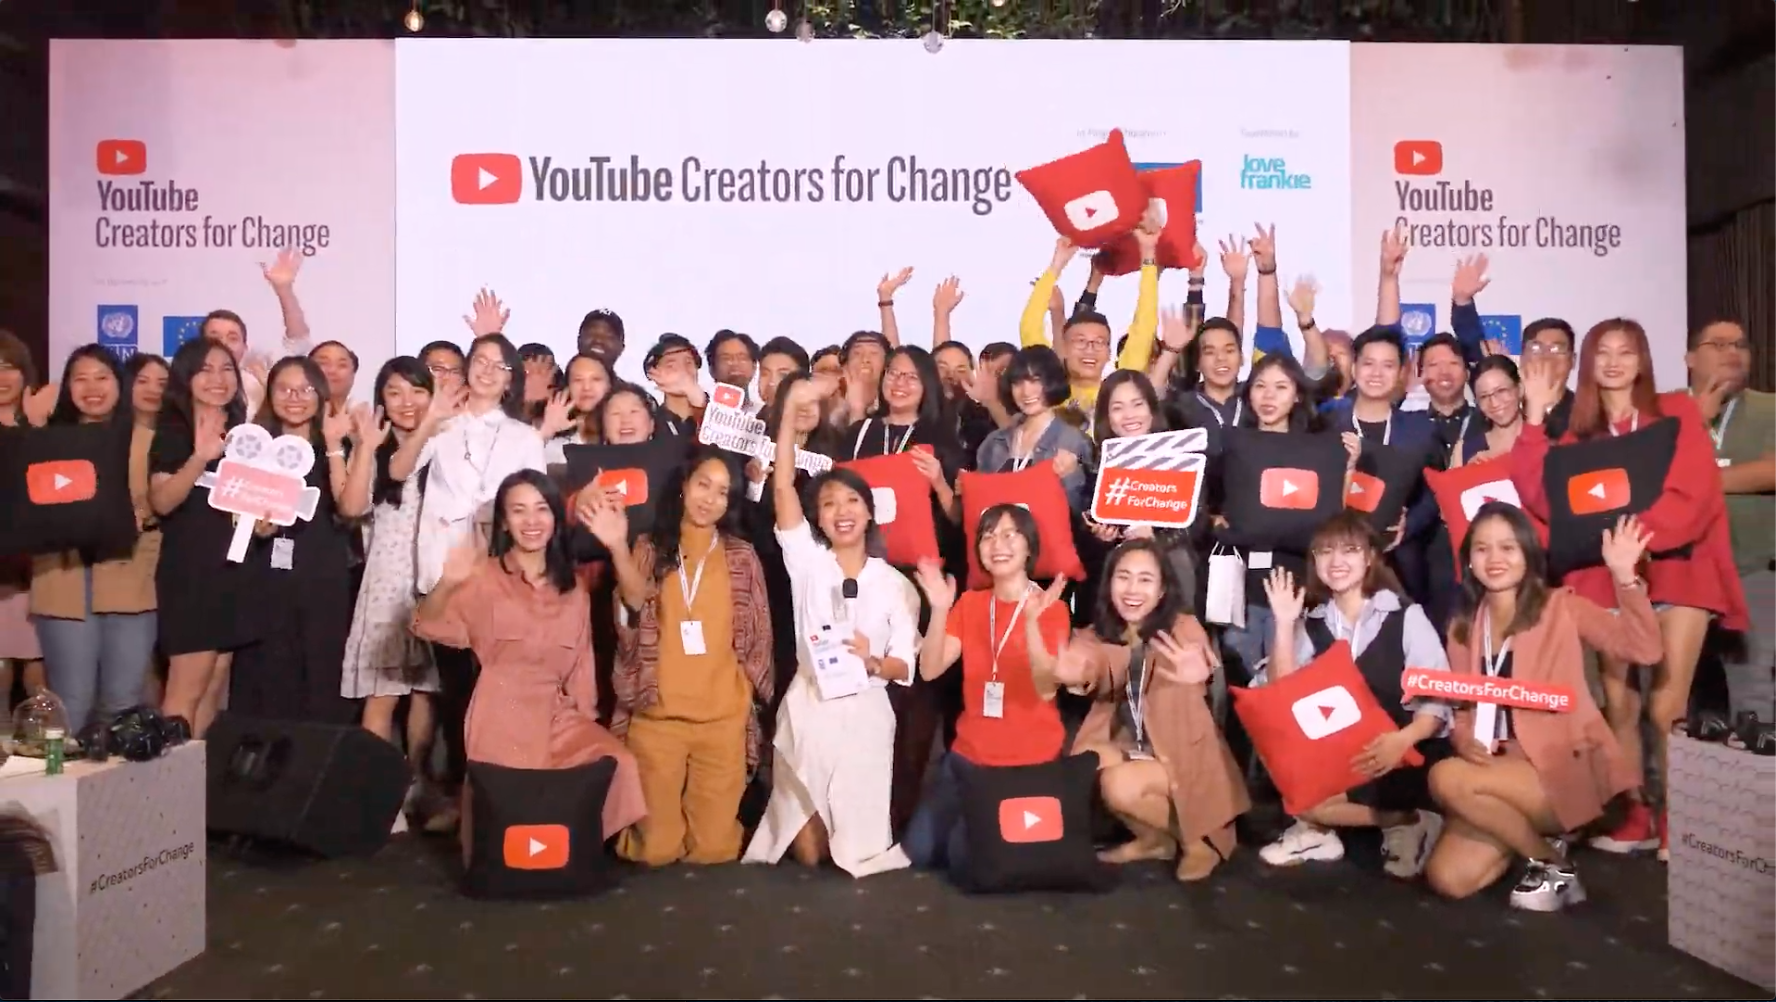 YouTube Creators for Change 2